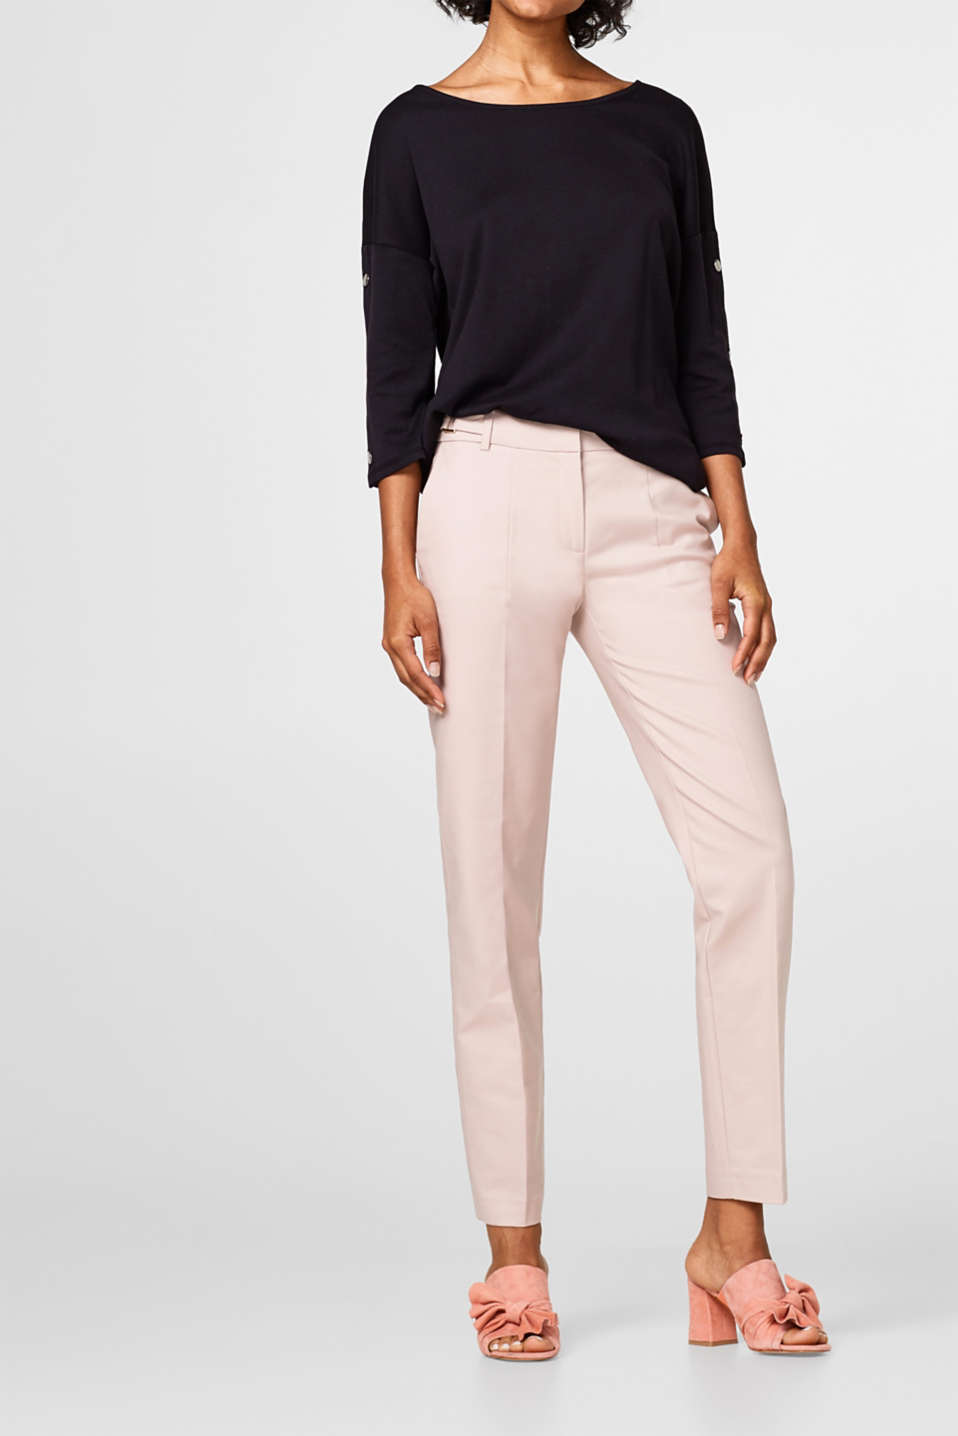 Esprit - Cotton stretch trousers with a waist panel